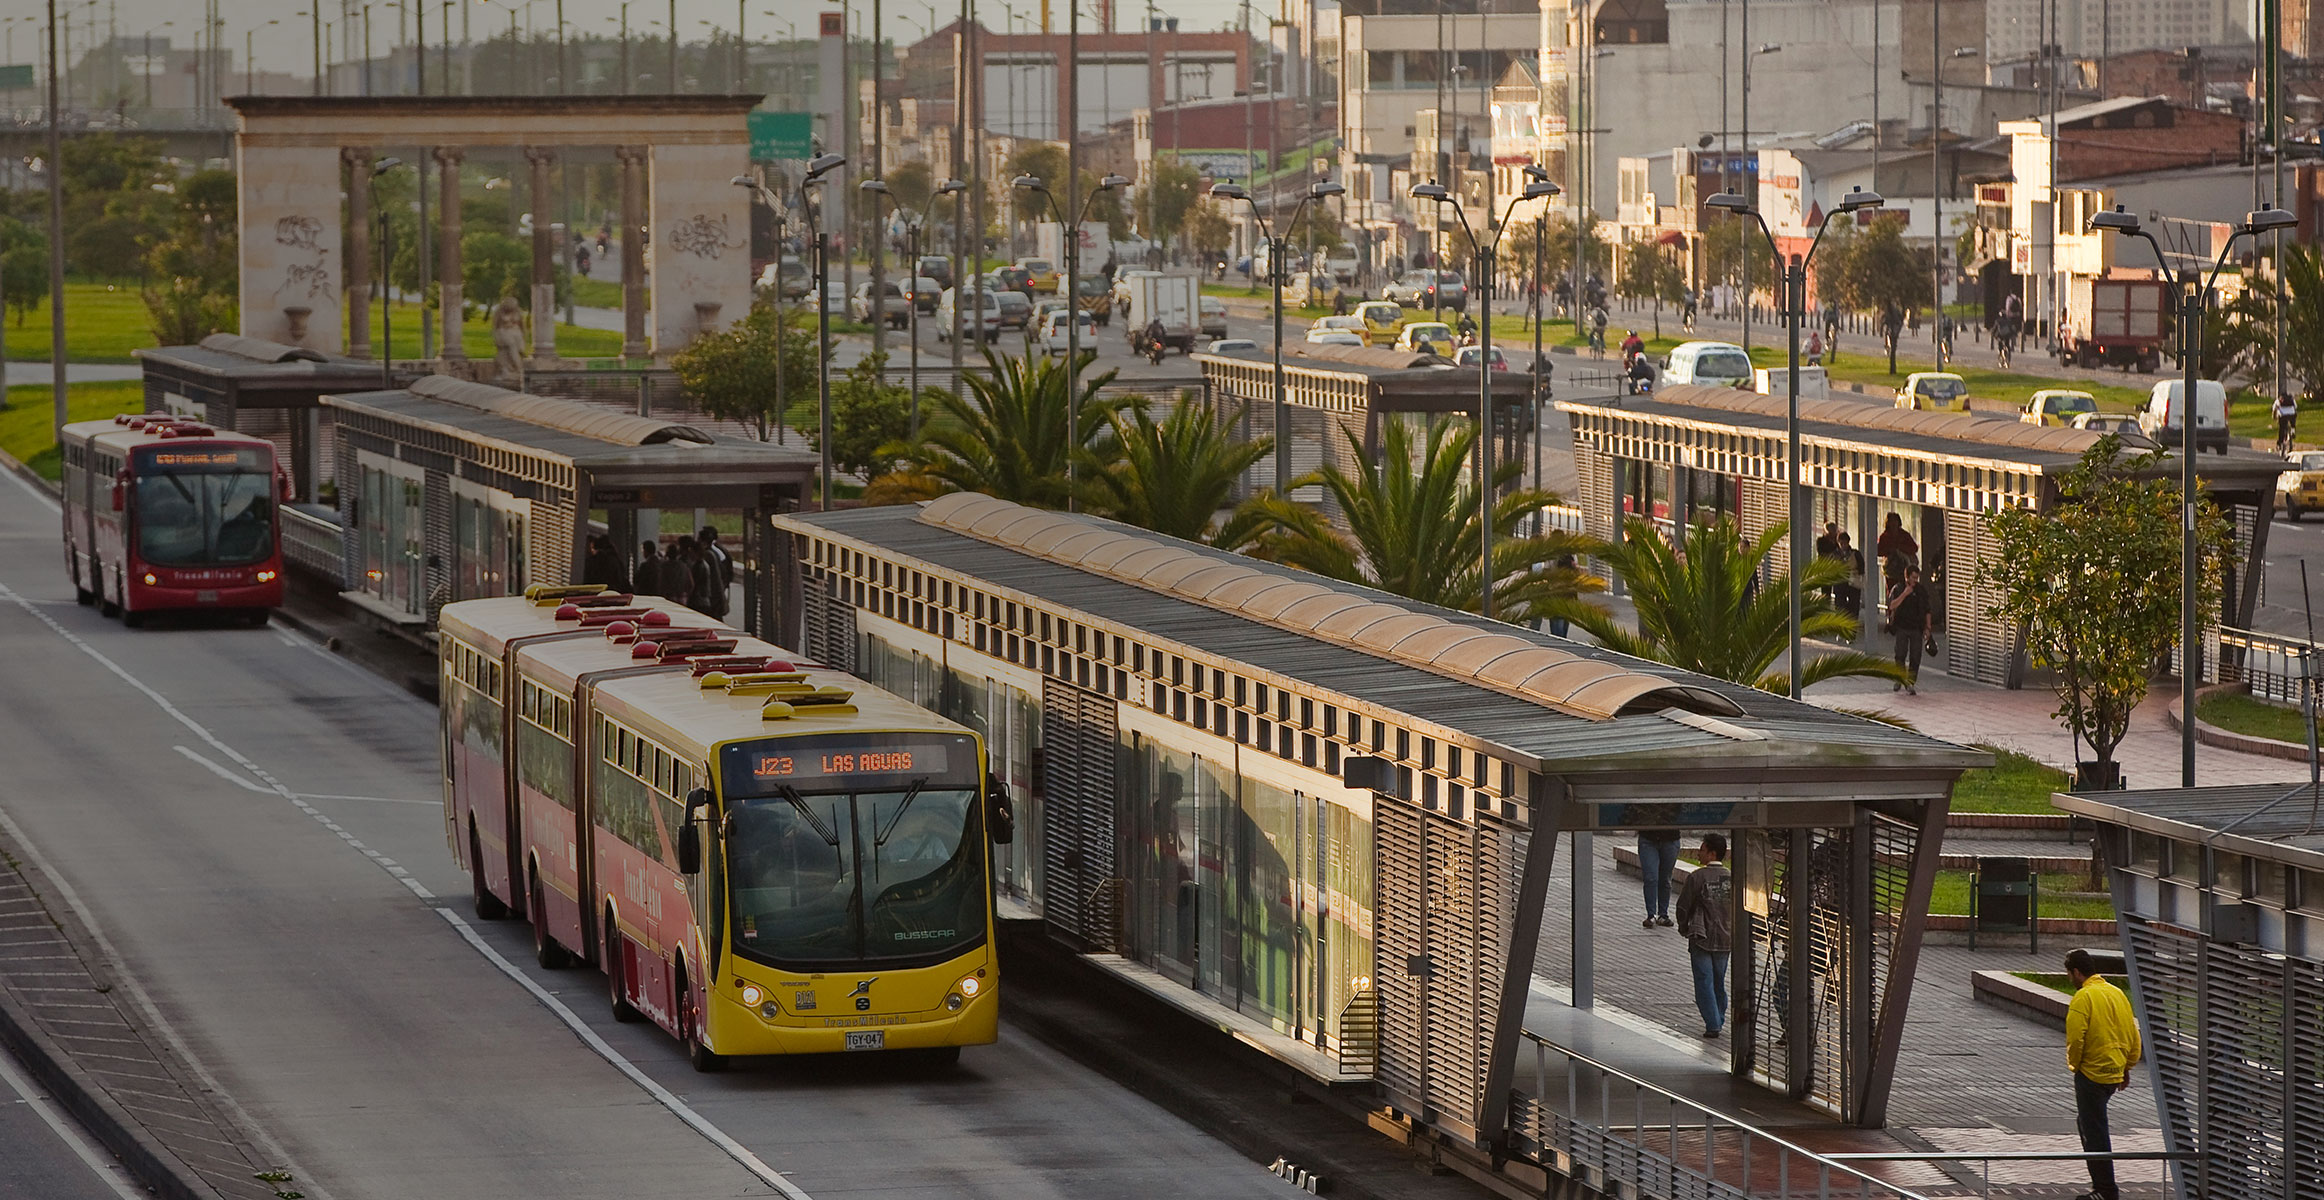 urbanization city and public transport infrastructure Urban infrastructure in sub-saharan africa - harnessing land values city public transport infrastructures will be embedded the expansion of urban public transport infrastructure systems will assume great importance.